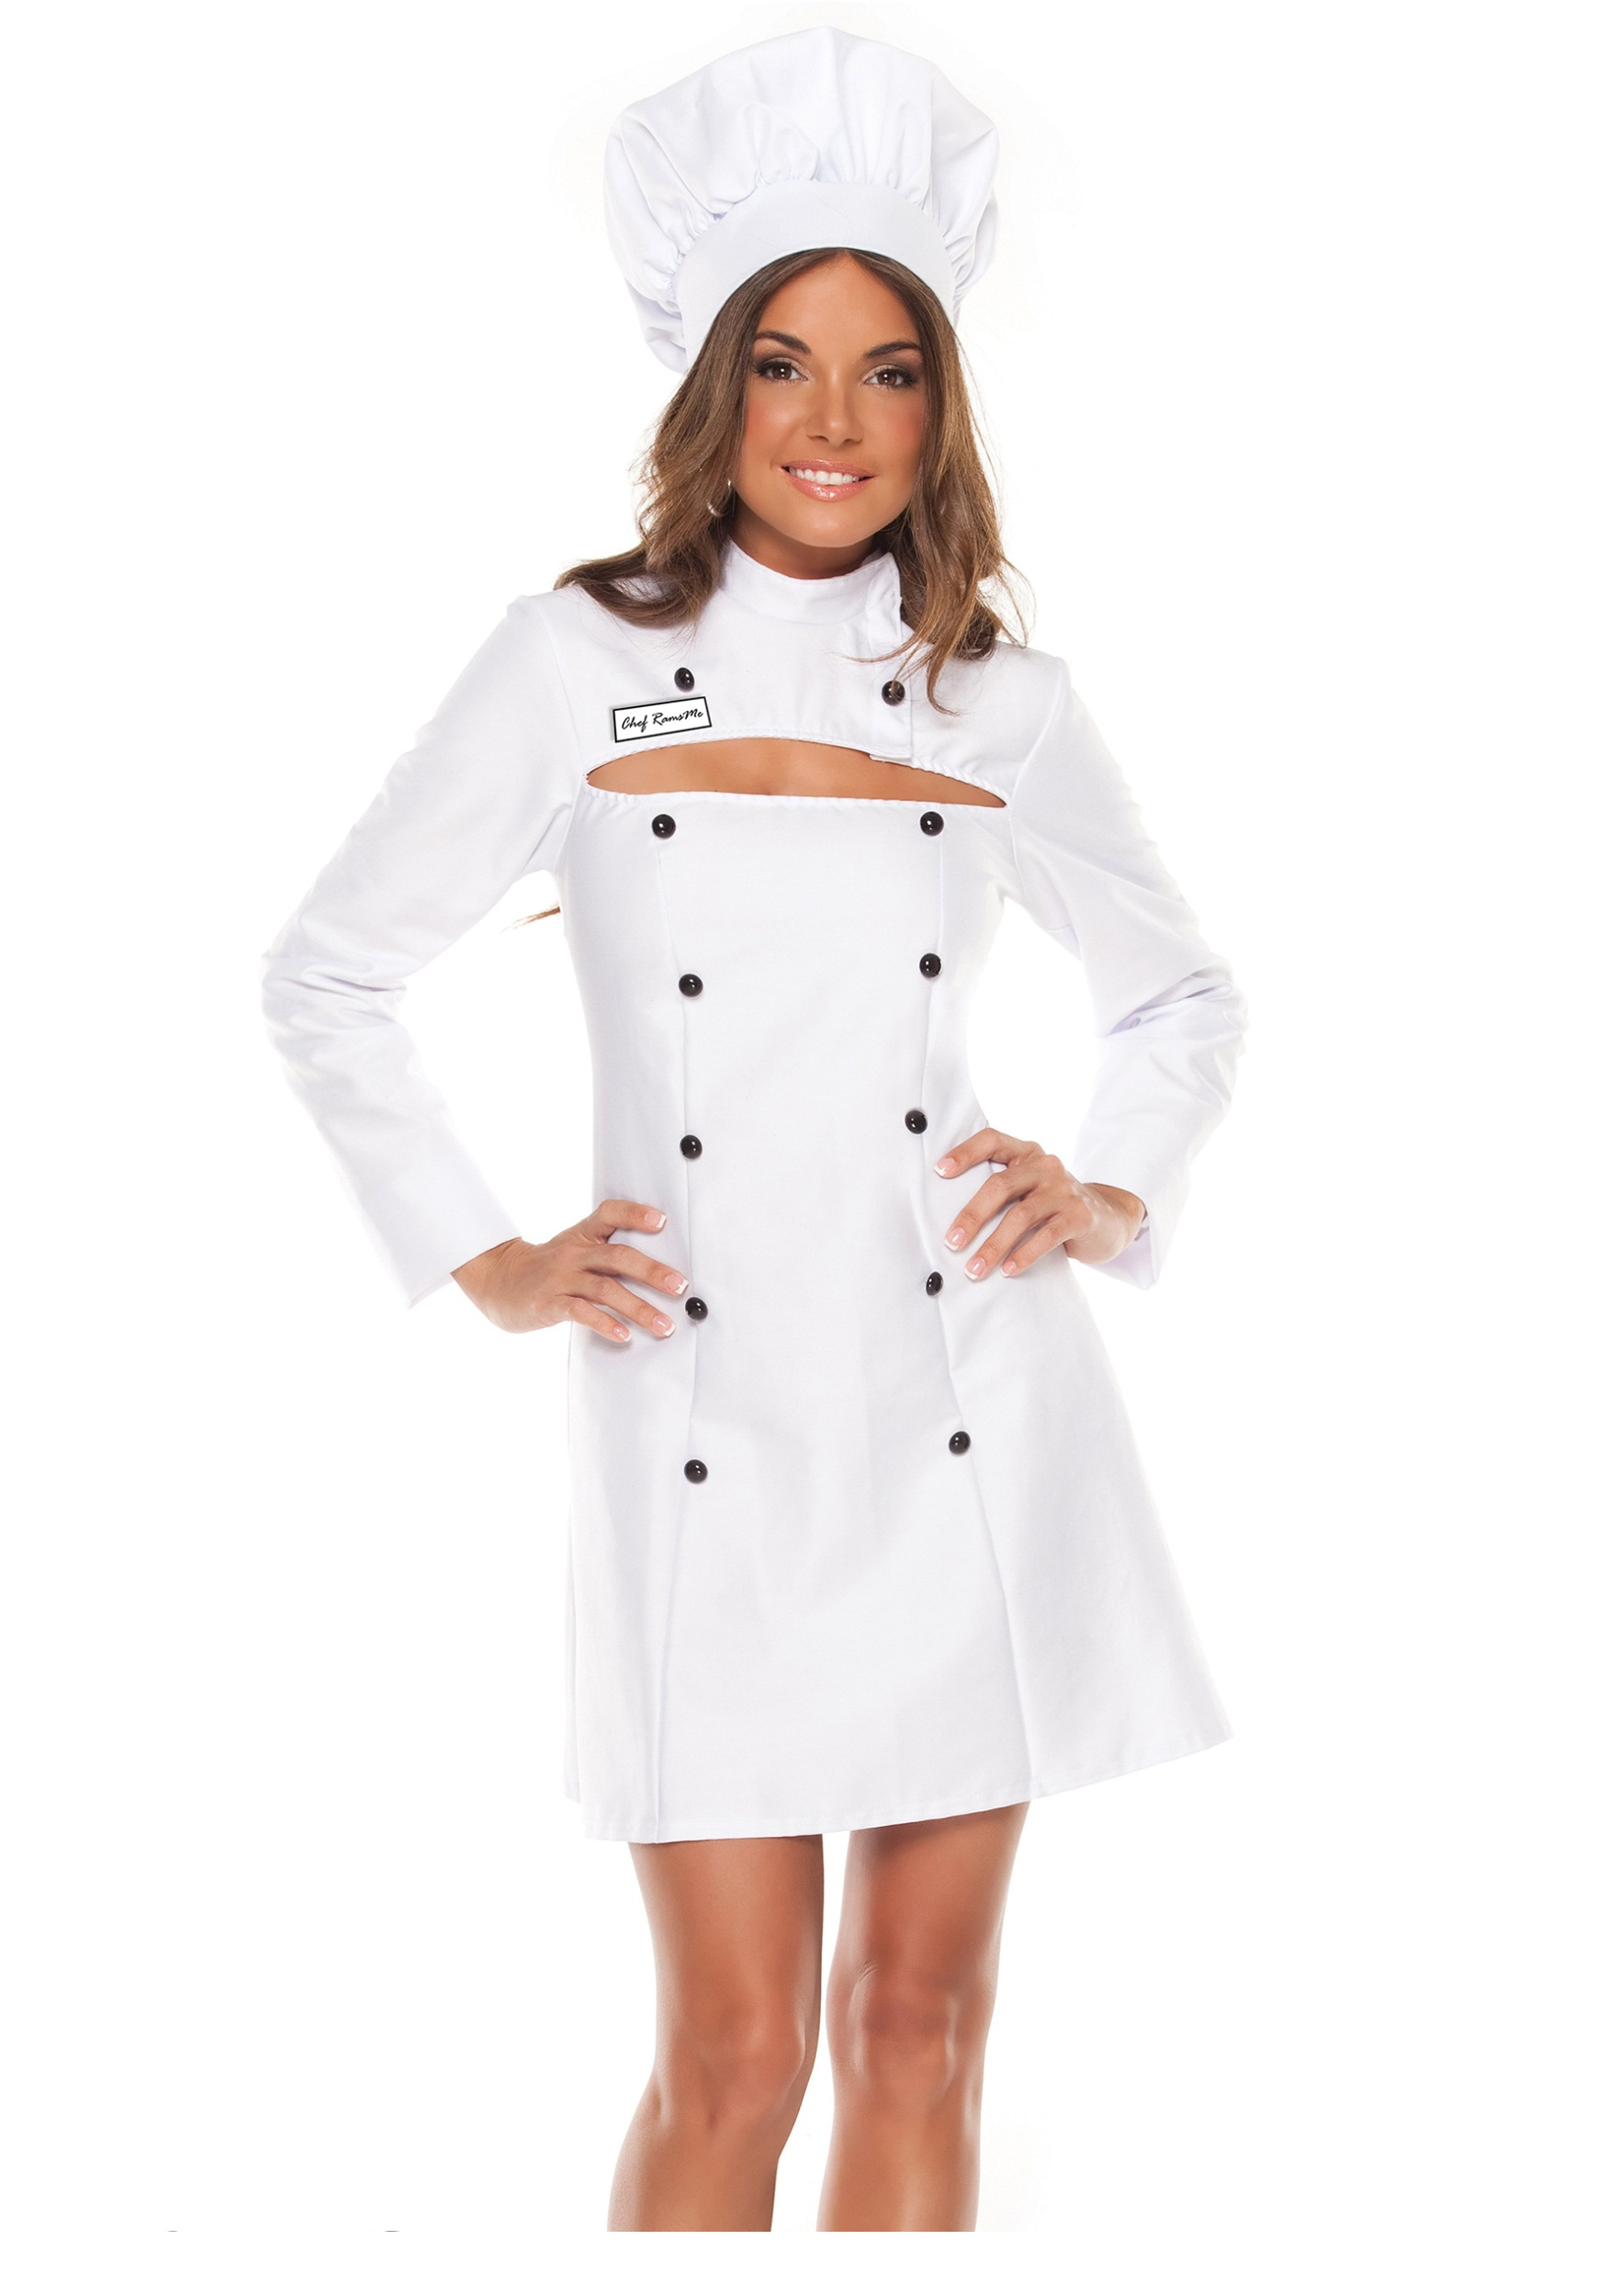 Womens Plus Size Chef Costume  sc 1 st  Halloween Costumes & Womens Plus Size Chef Costume - Halloween Costumes